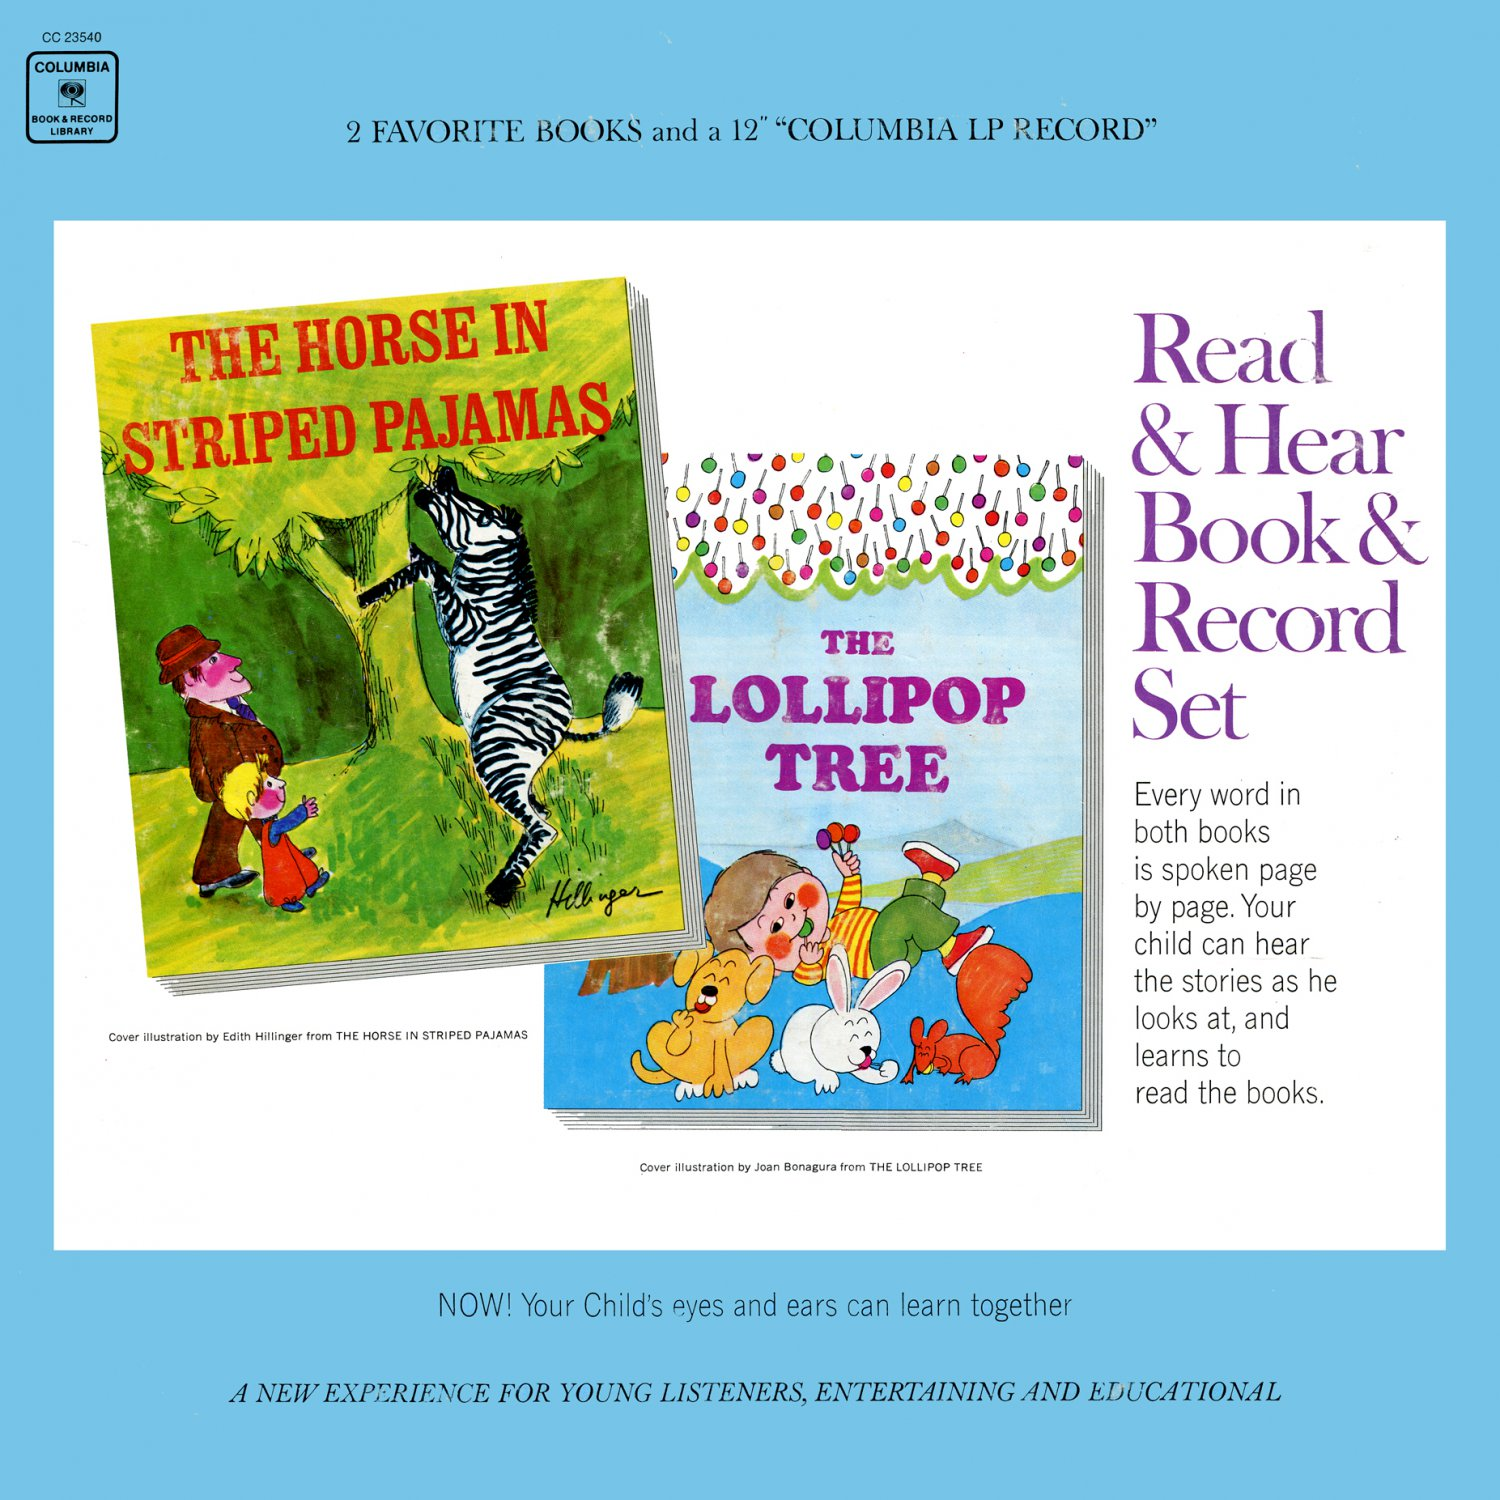 The Horse In Striped Pajamas / Lollipop Tree - Music & Story Collection, Burl Ives LP/CD